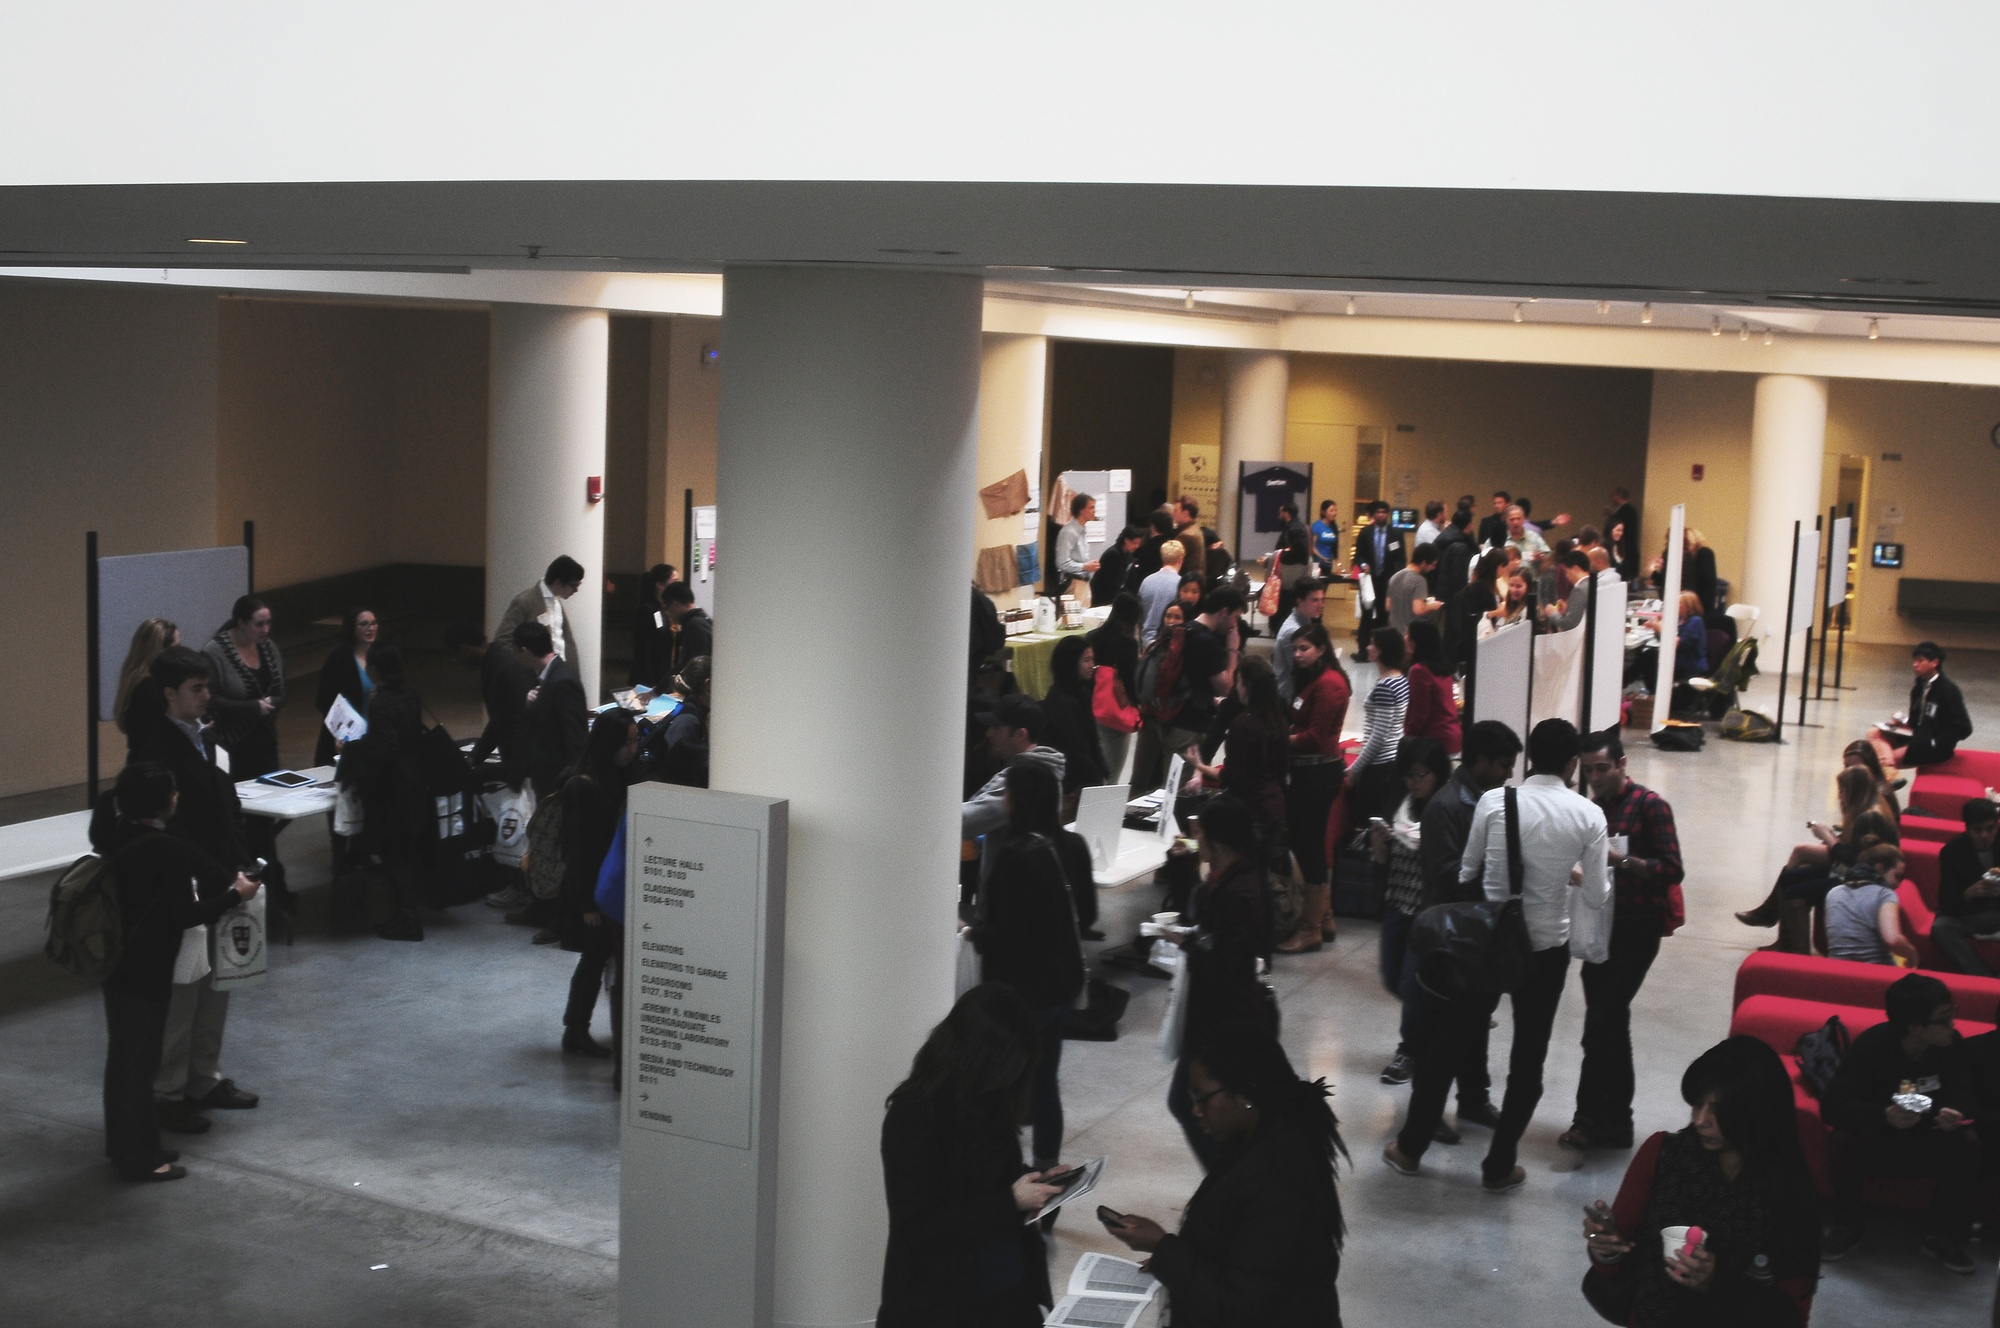 Students explore social entrepreneurship at the job fair. The Igniting Innovation Summit has brought inspiring speakers and start-ups to Harvard this crispy Saturday.